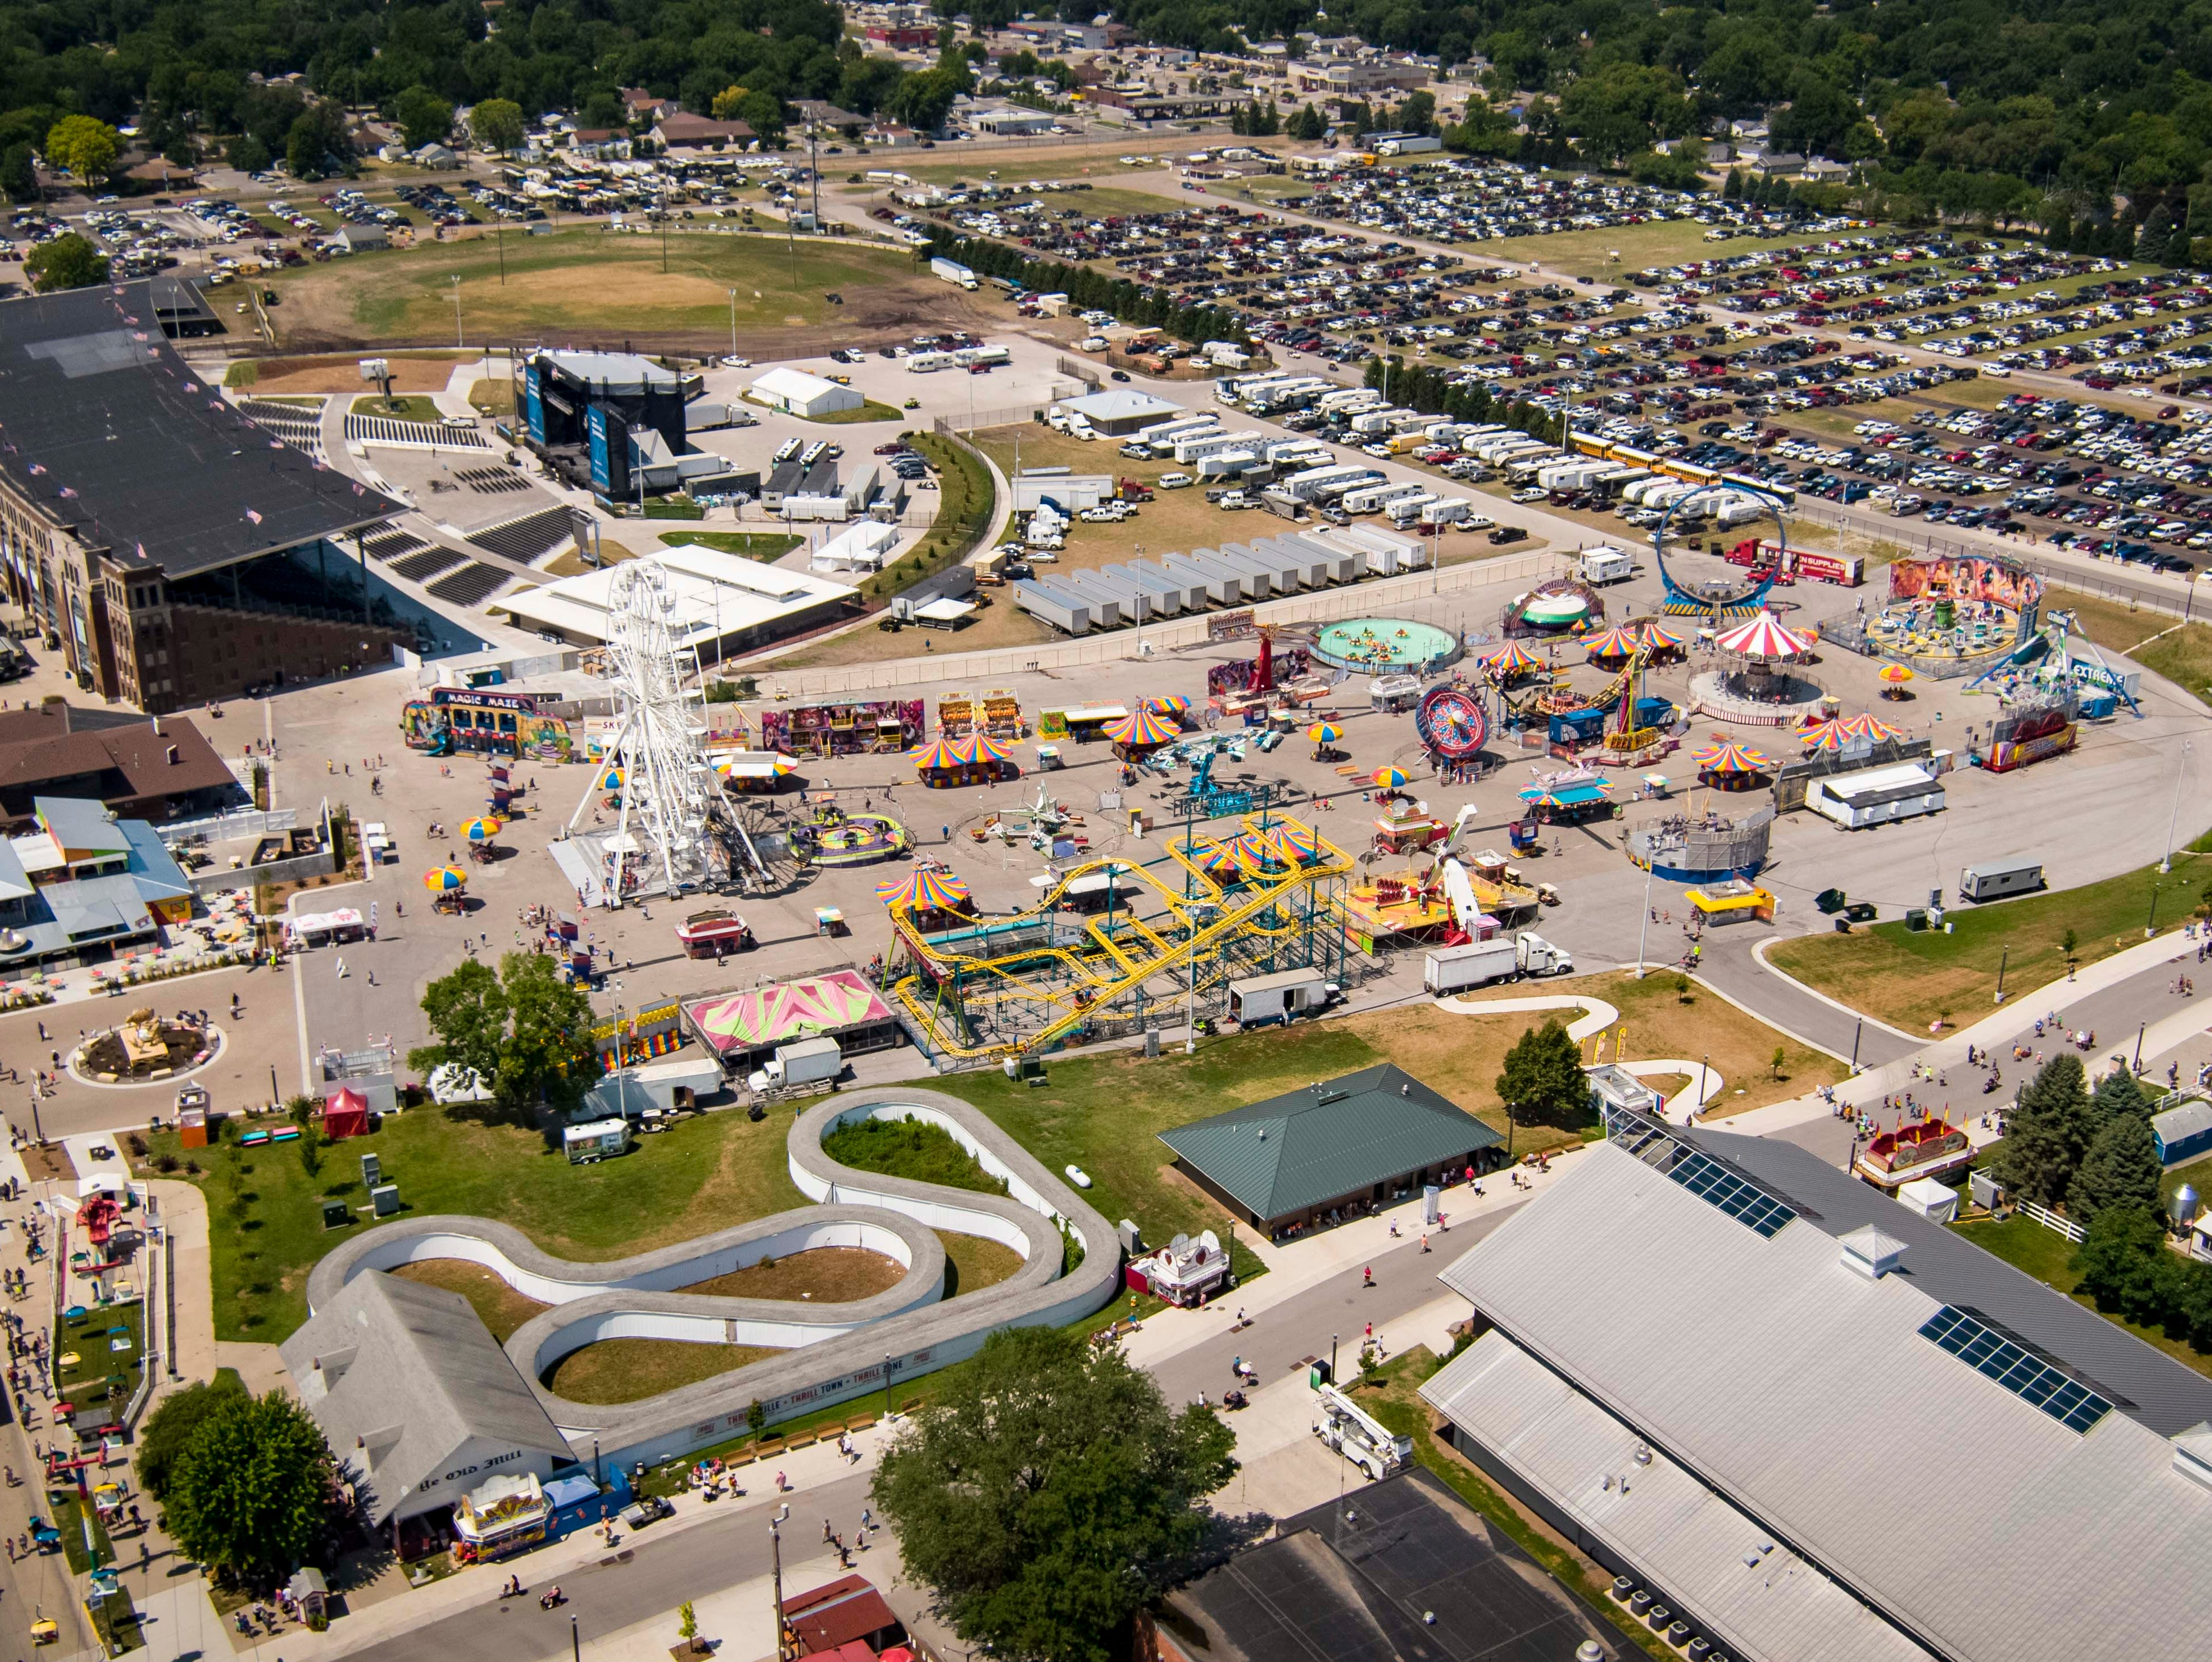 Aerial view of the new grandstand and midway  at the 2018 Iowa State Fair in Des Moines Thursday, Aug. 9, 2018.